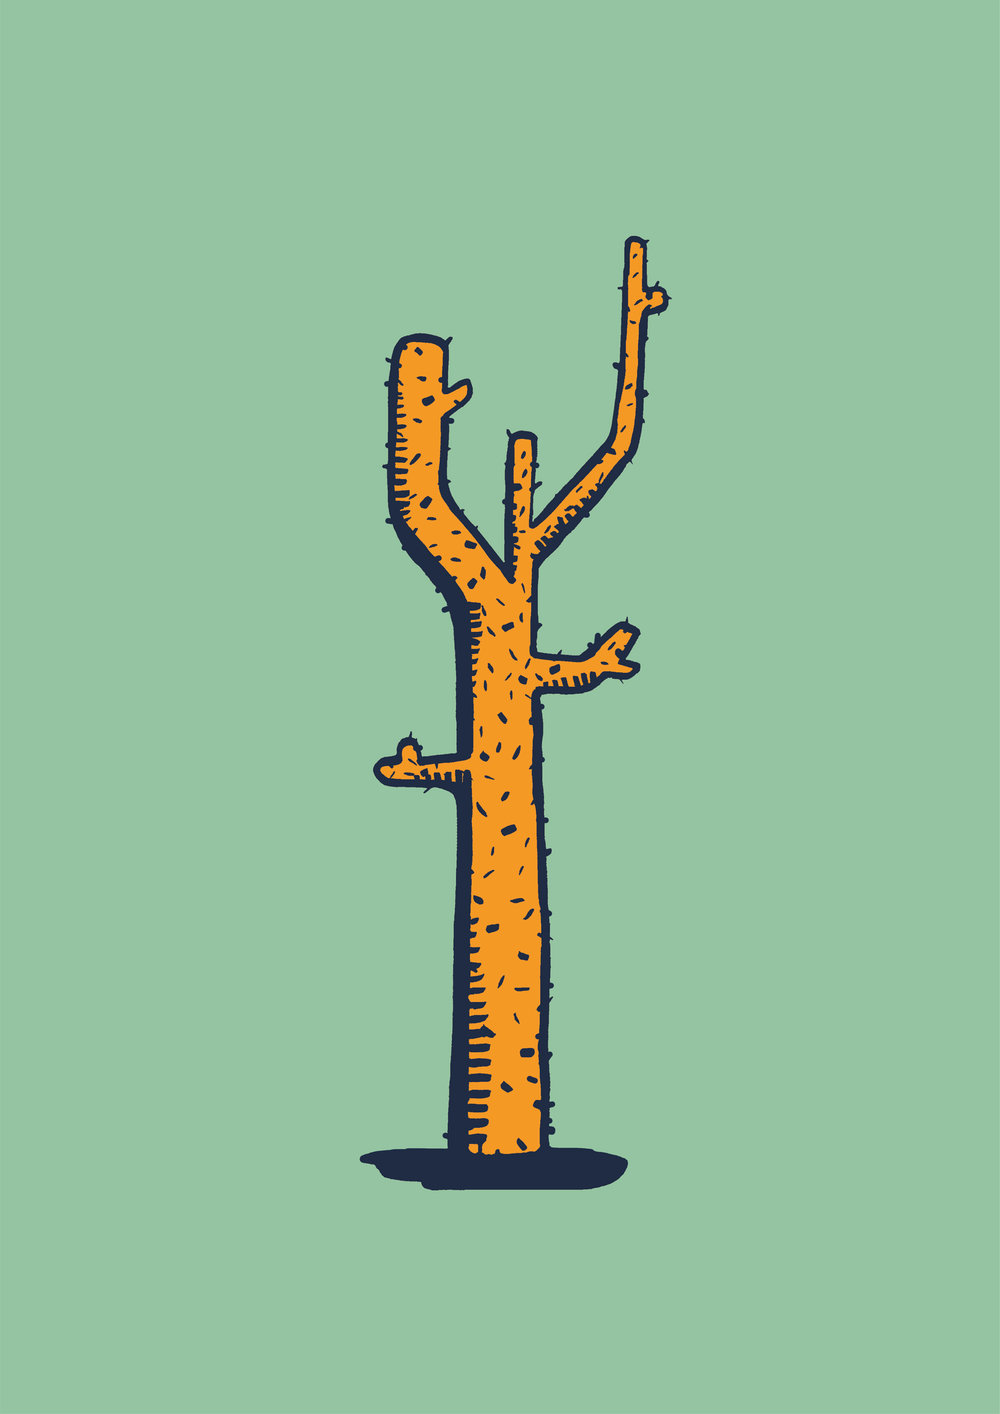 Cactus_illustration_phist.jpg